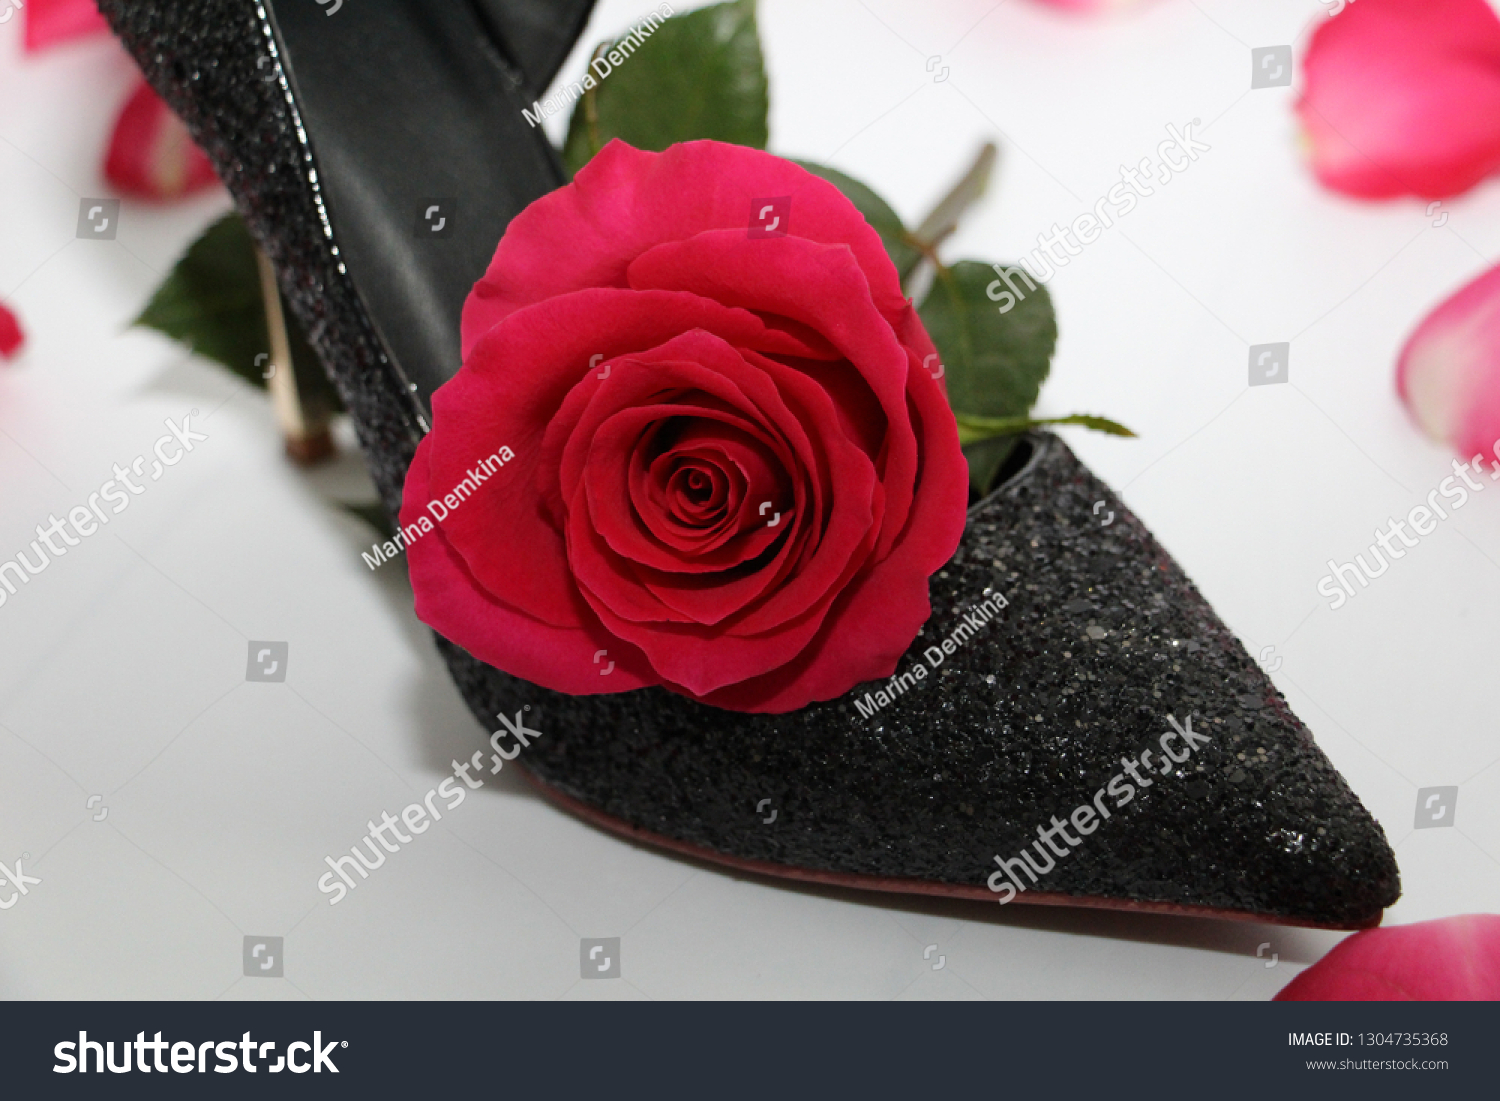 9530d81ae8e Pink rose in a female shoe. Black shoes with high heels. Rose next to.